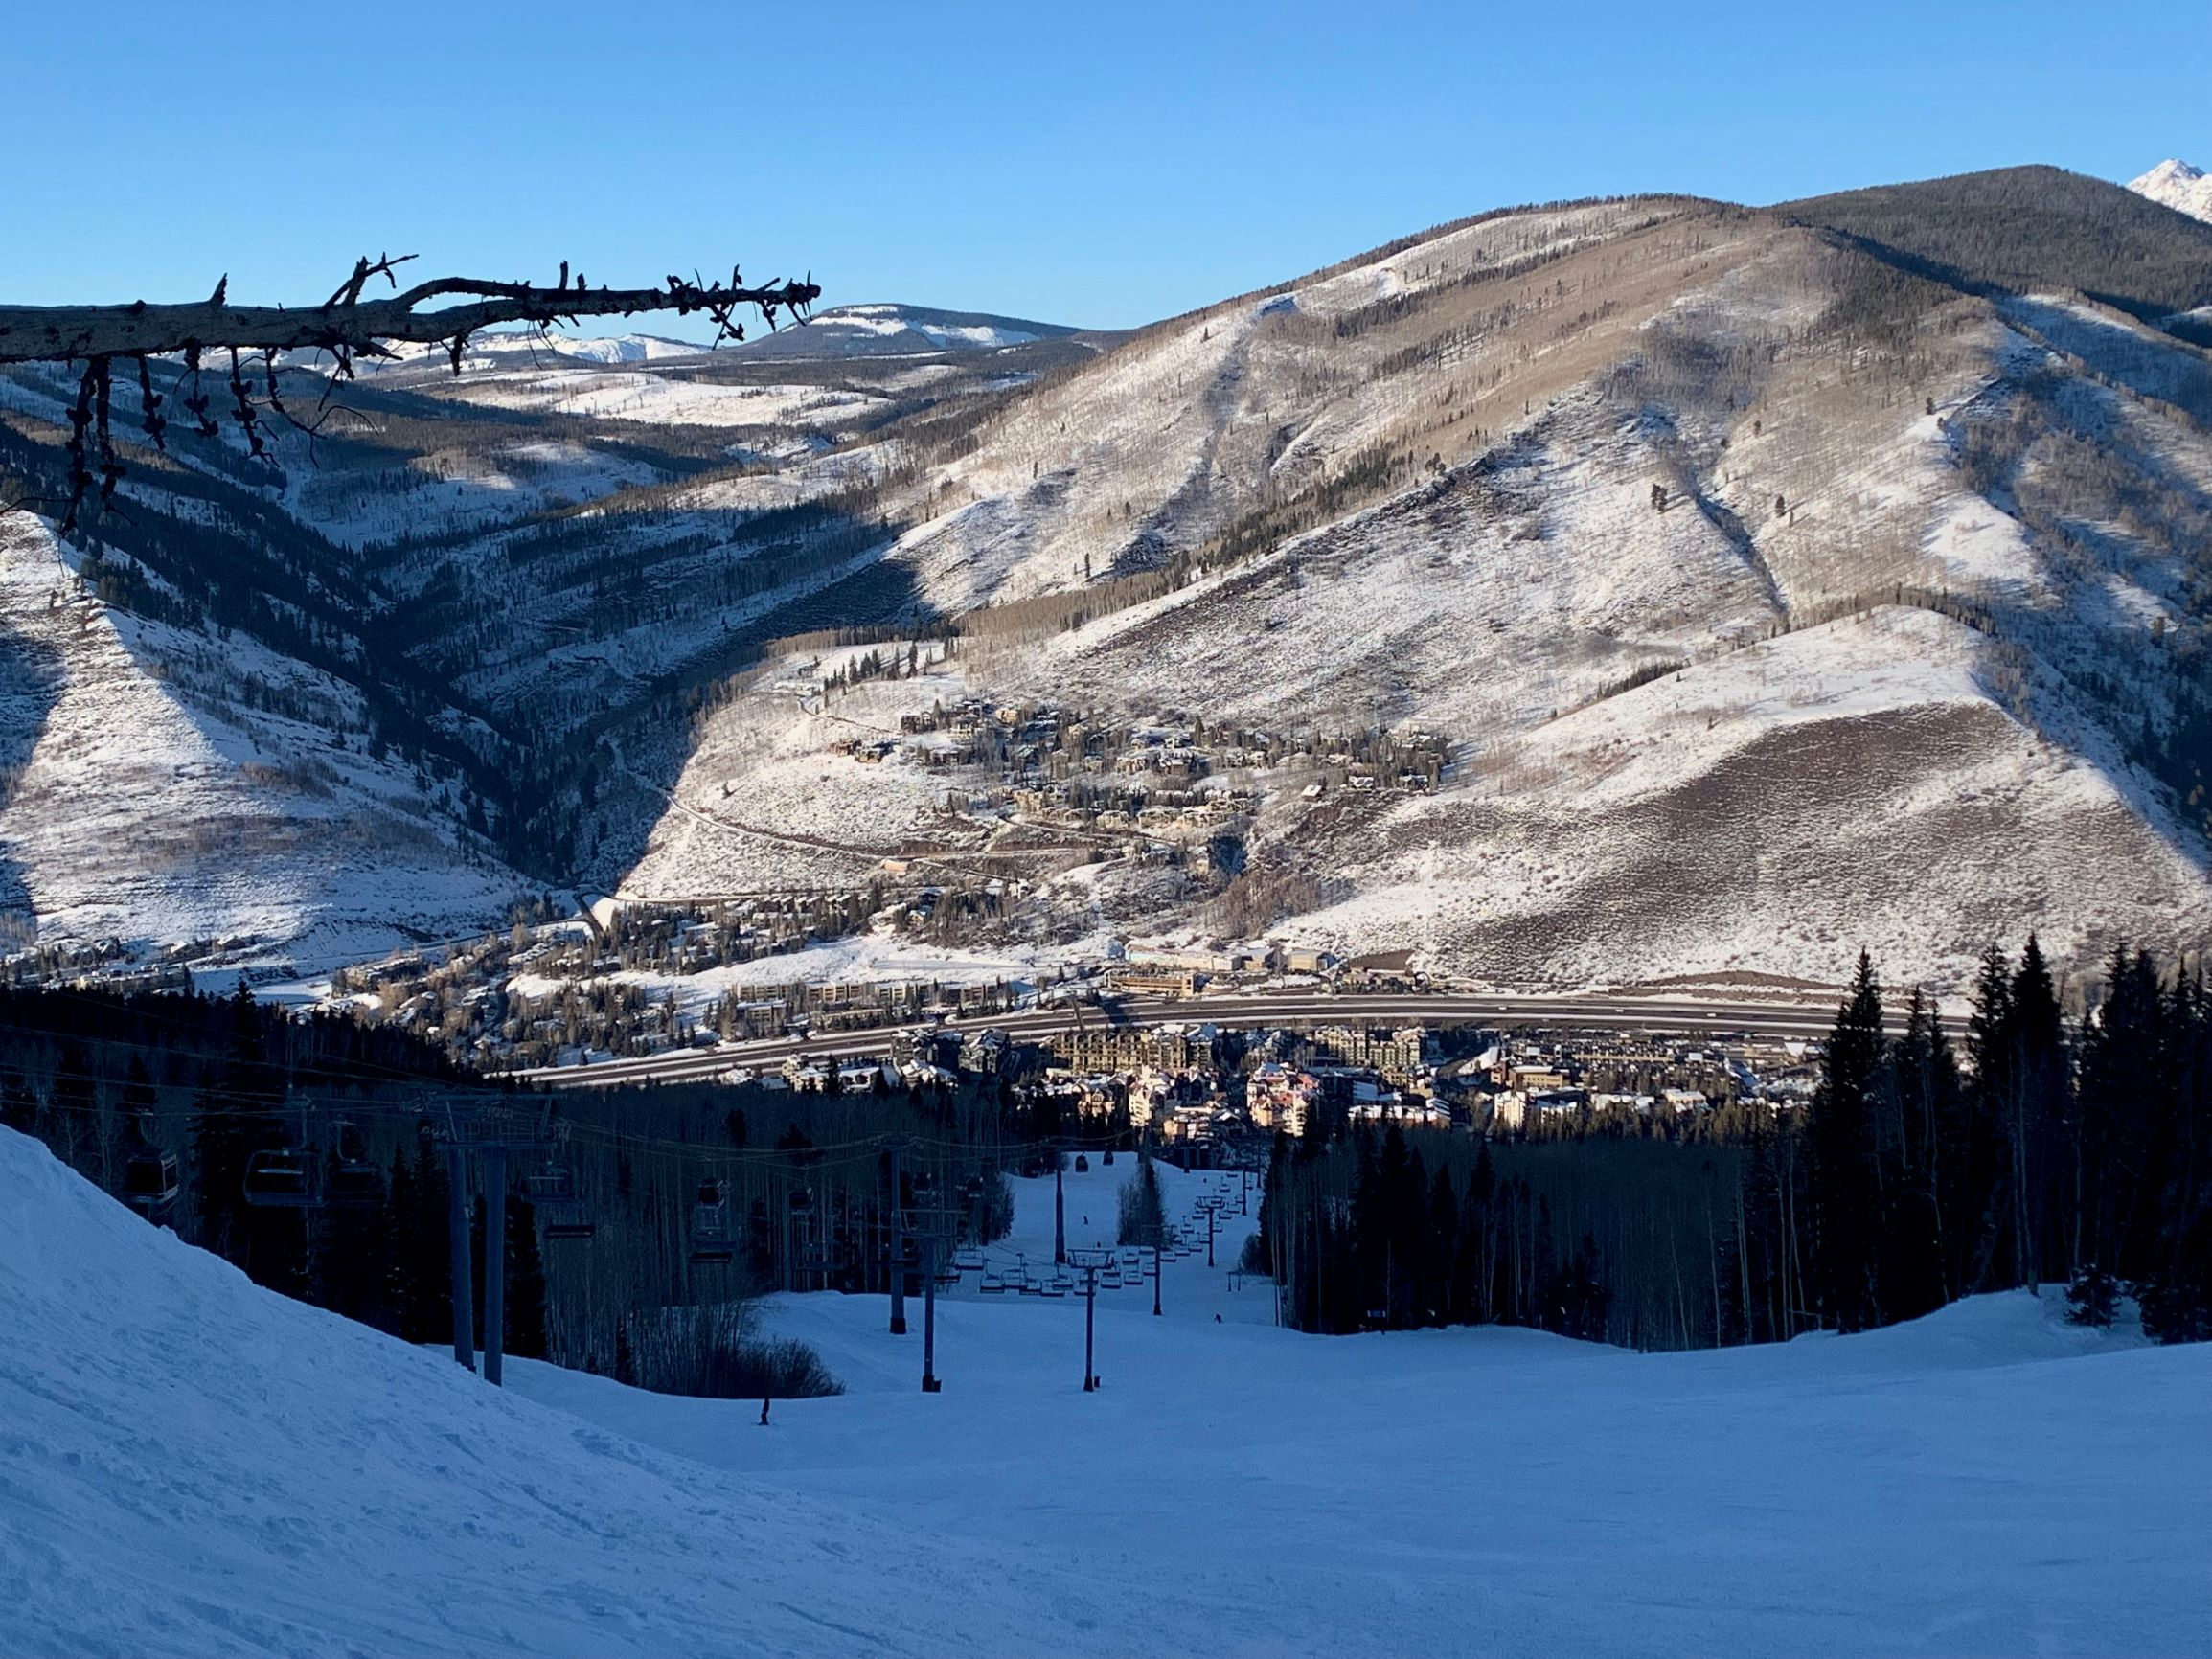 Viewing Vail Village from the slopes on a beautiful blue-sky day.